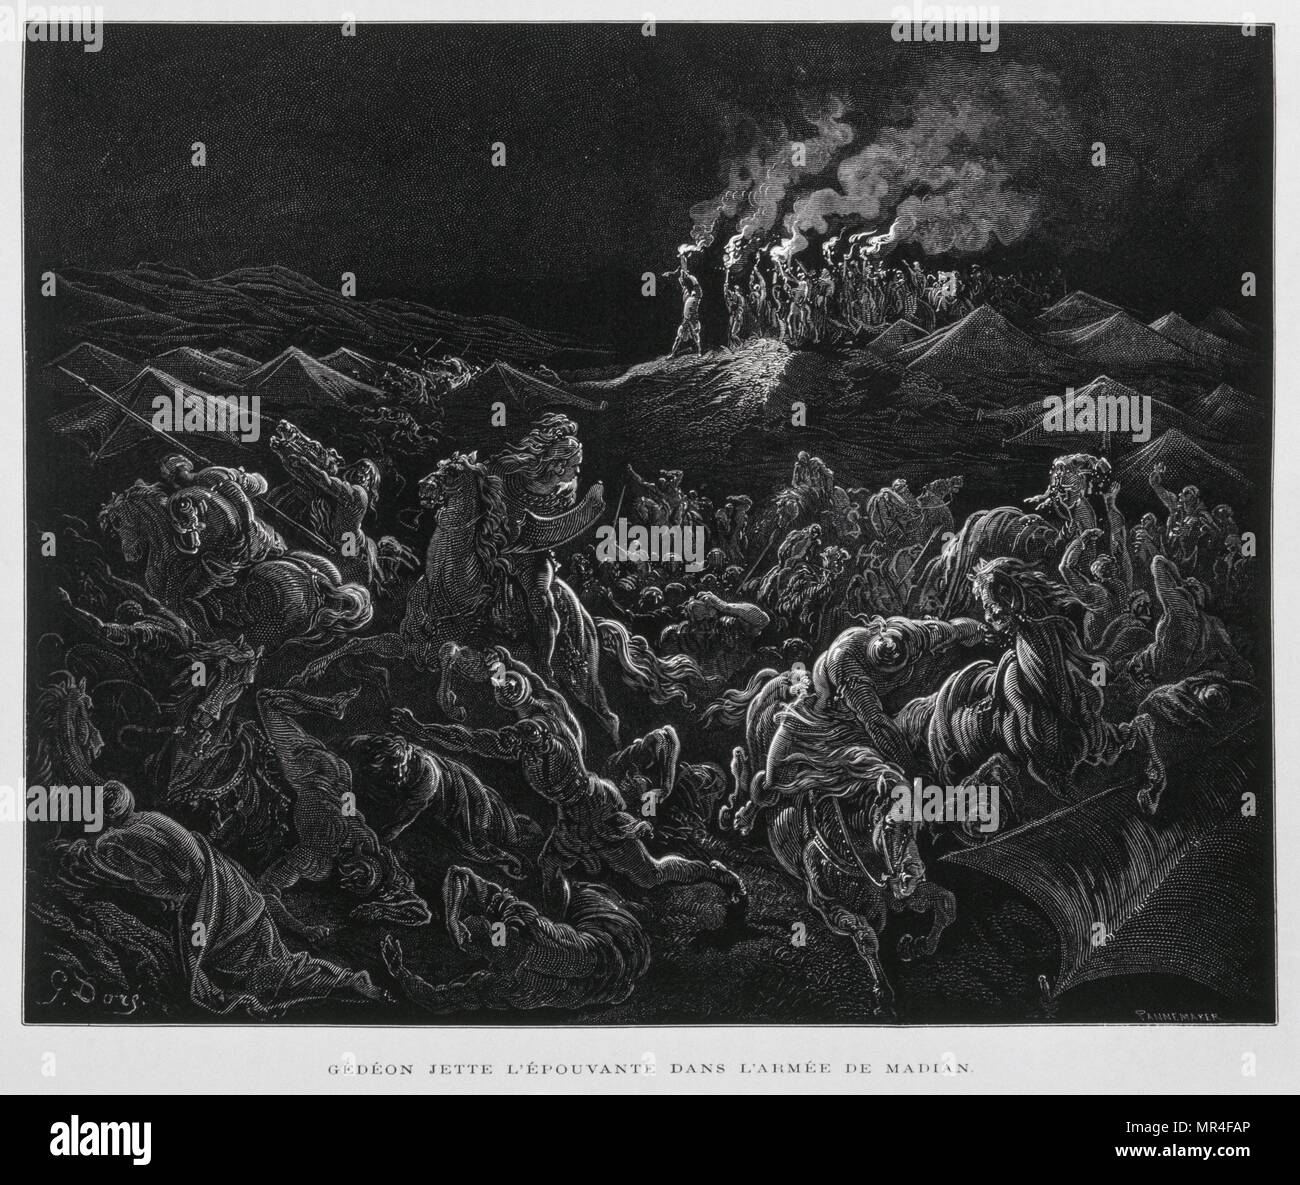 Gideon attacks the Midianites at night, Illustration from the Dore Bible 1866. In 1866, the French artist and illustrator Gustave Dore (1832-1883), published a series of 241 wood engravings for a new deluxe edition of the 1843 French translation of the Vulgate Bible, popularly known as the Bible de Tours. This new edition was known as La Grande Bible de Tours and its illustrations were immensely successful - Stock Image